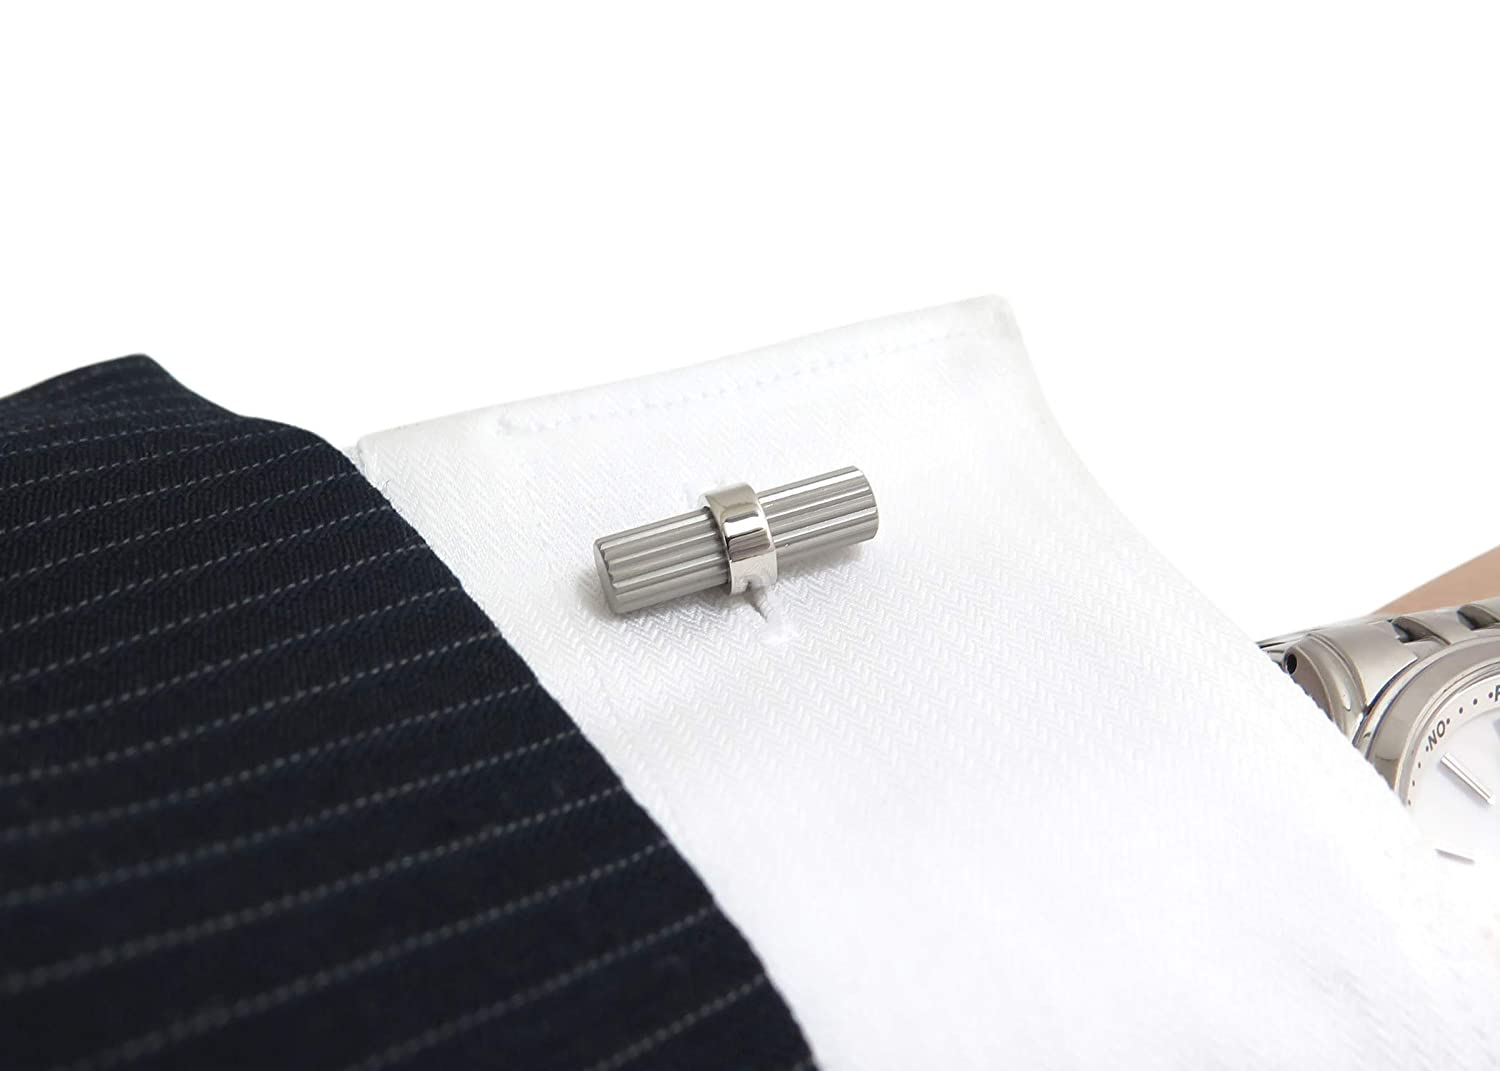 FB Jewels Solid 925 Sterling Silver Caducei Cuff Links